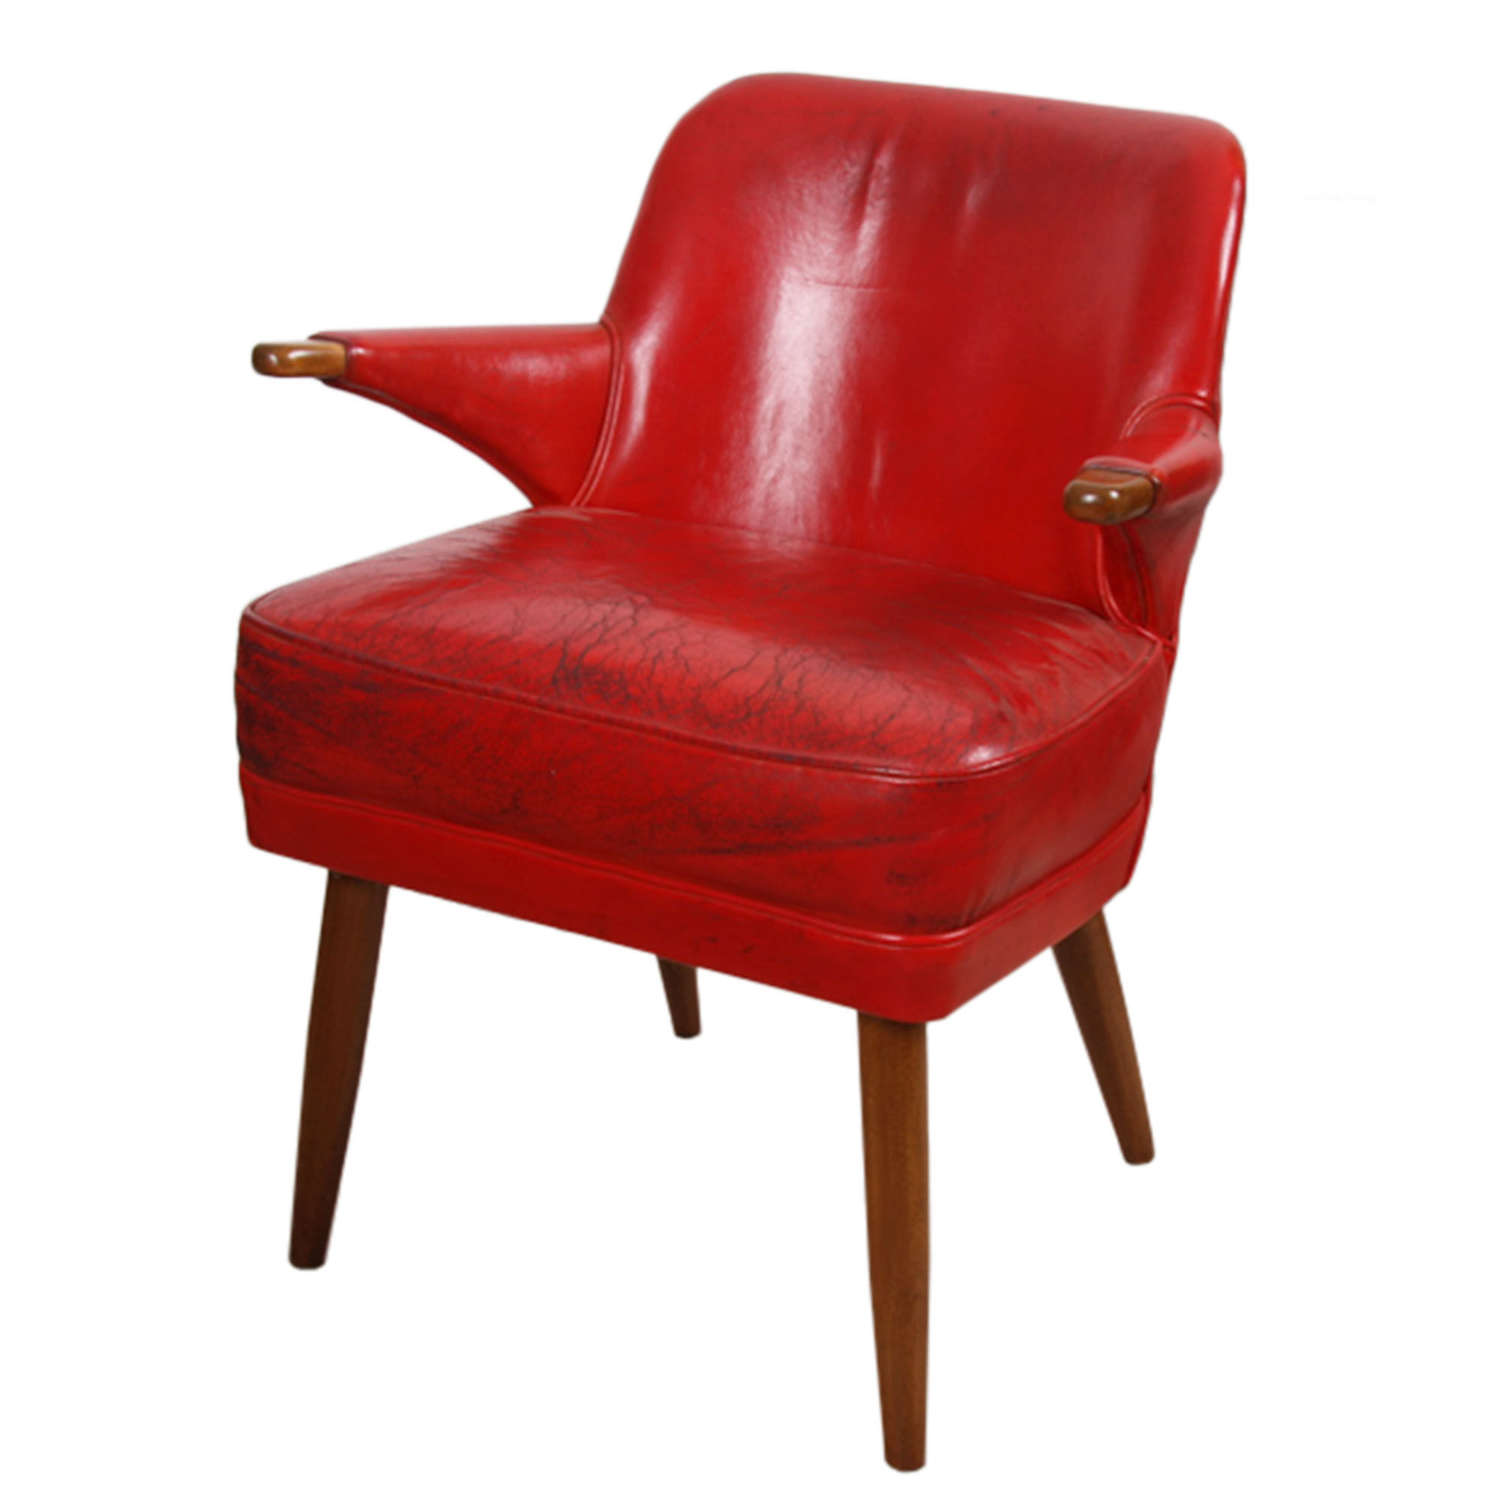 English 1950s Red Leather Chair